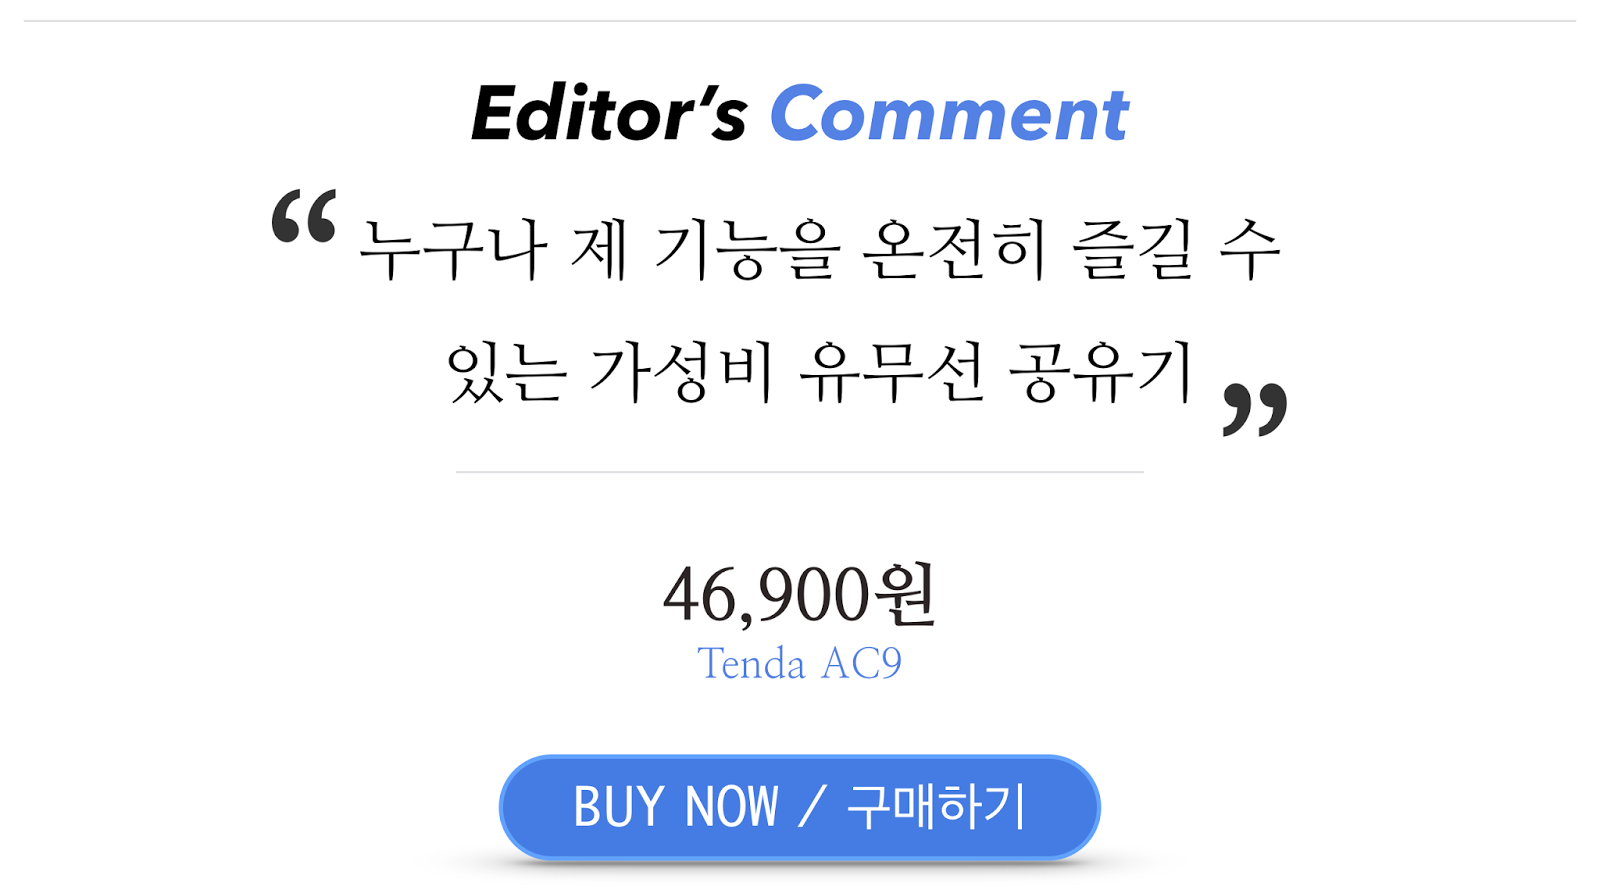 http://tendakorea.co.kr/product/detail.html?product_no=50&cate_no=78&display_group=1